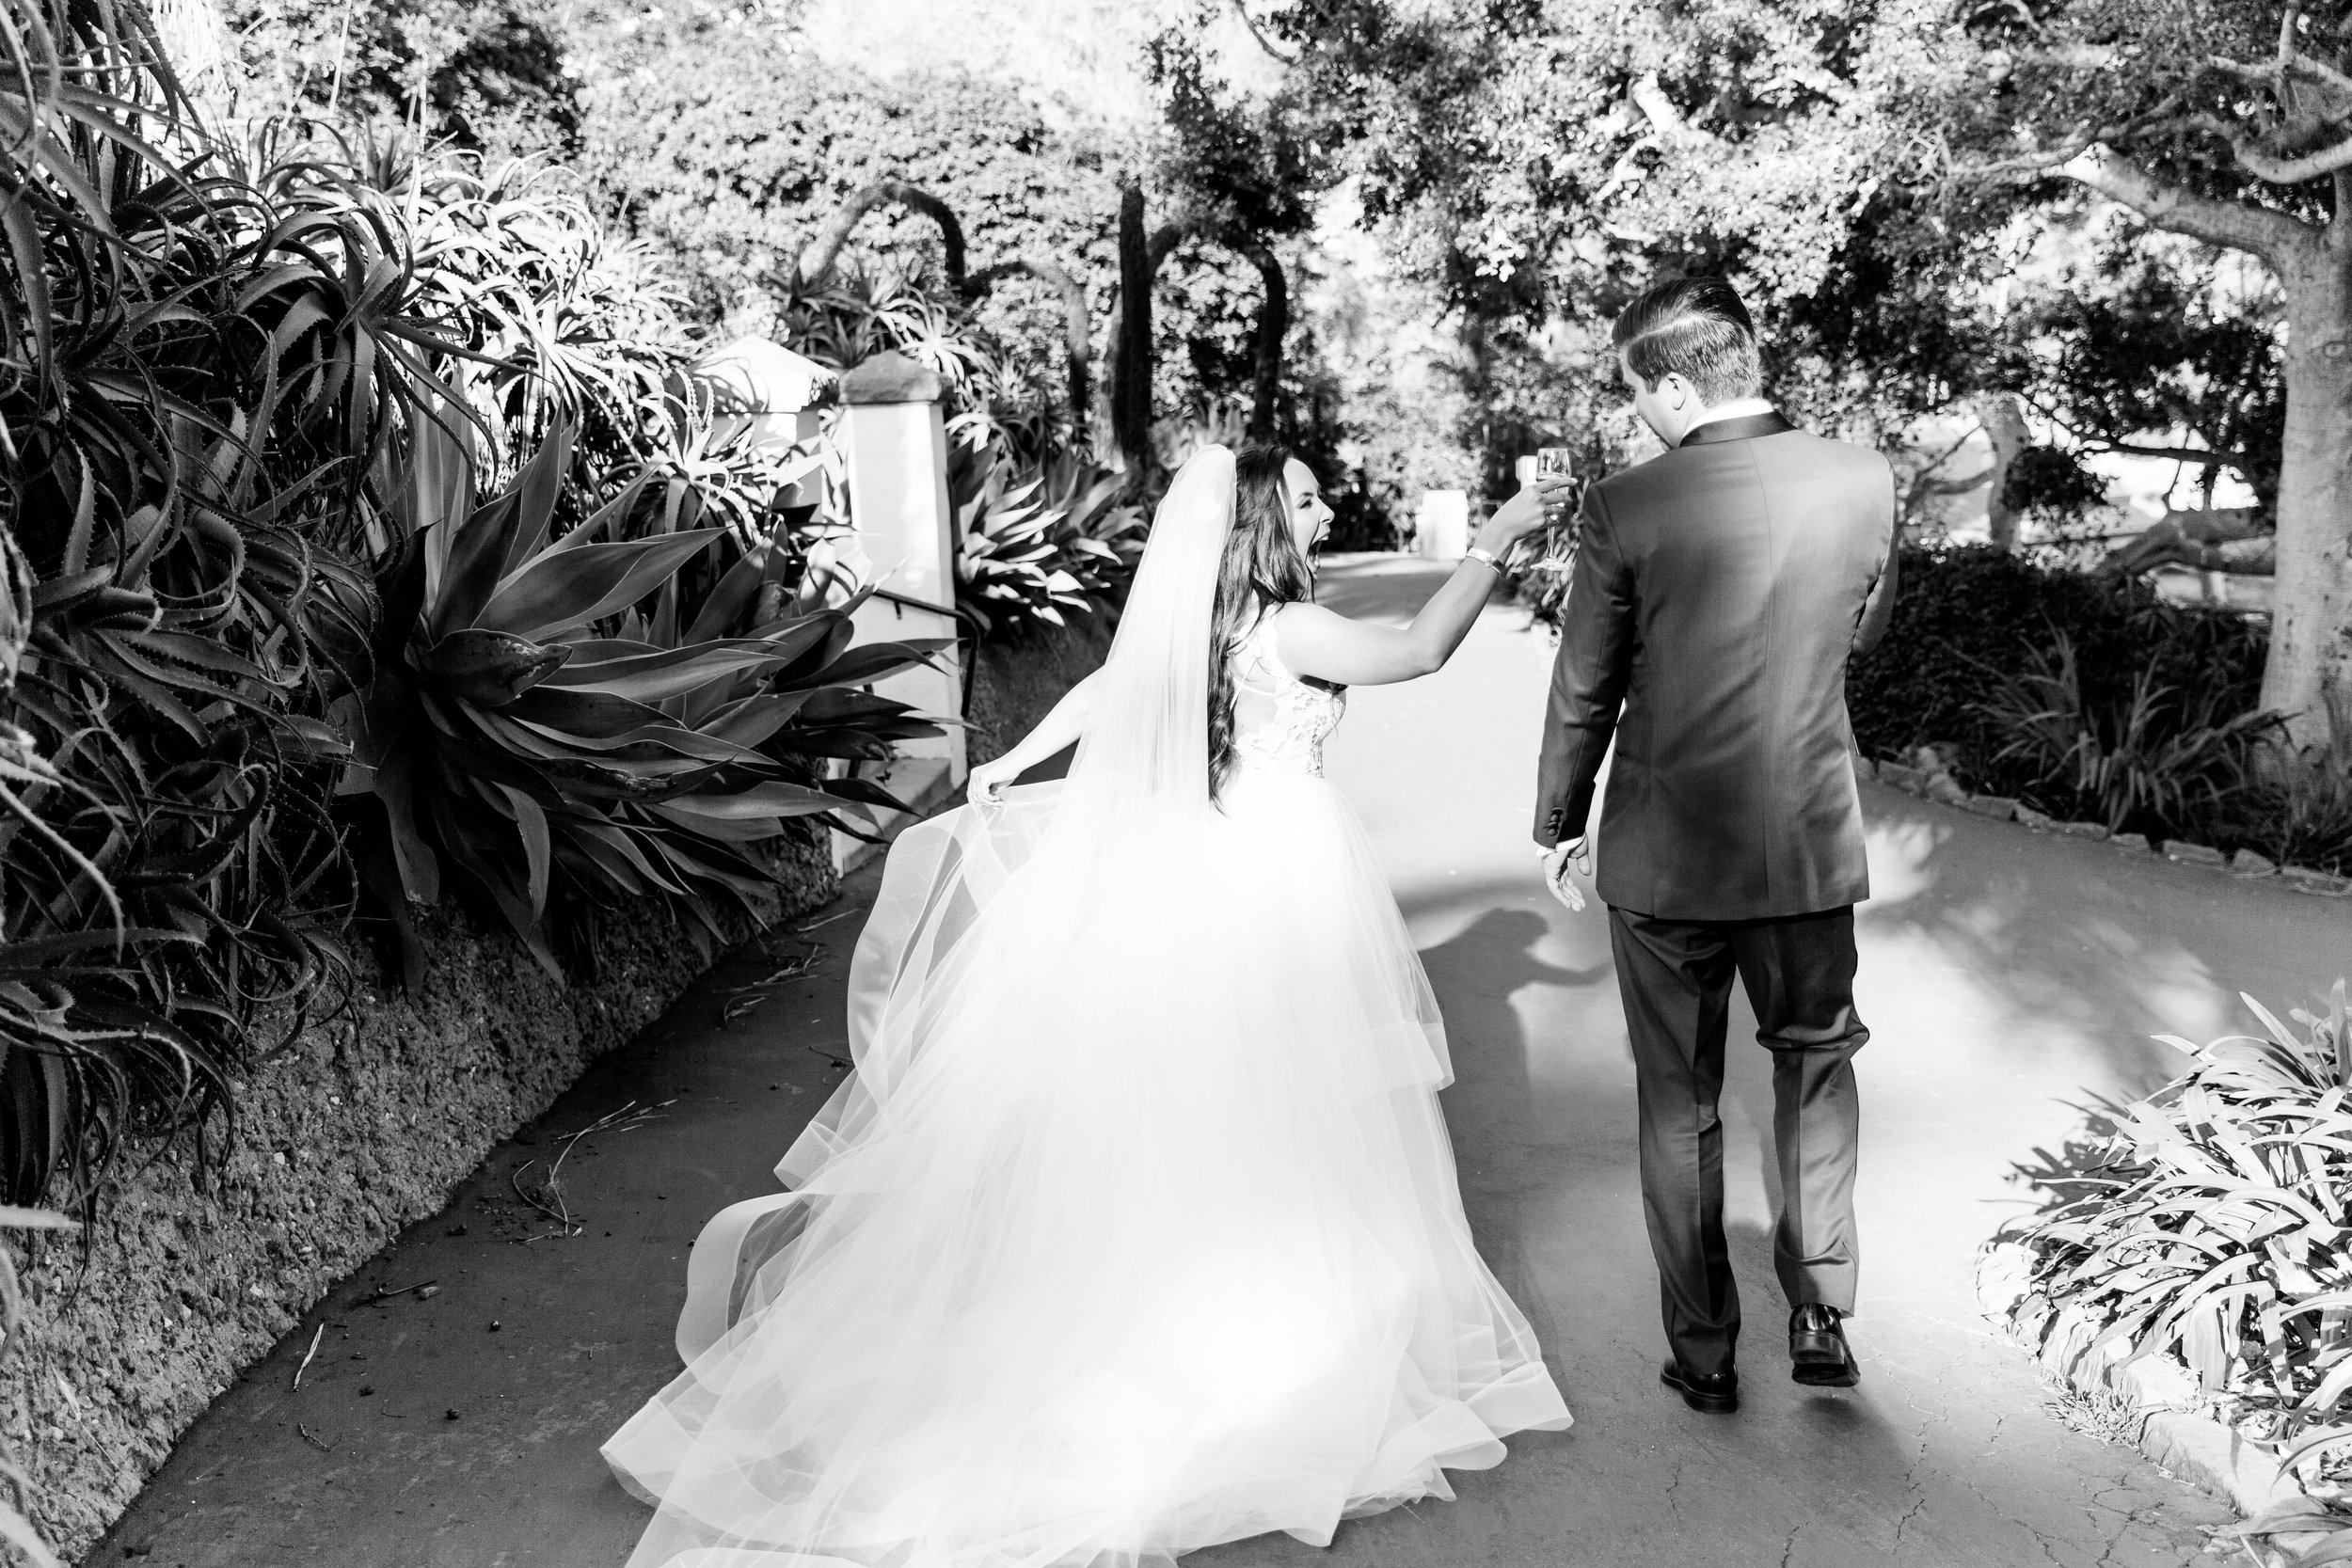 Kristin&PanchoWedding_04.14.18_MichelleKylePhotography-637.jpg